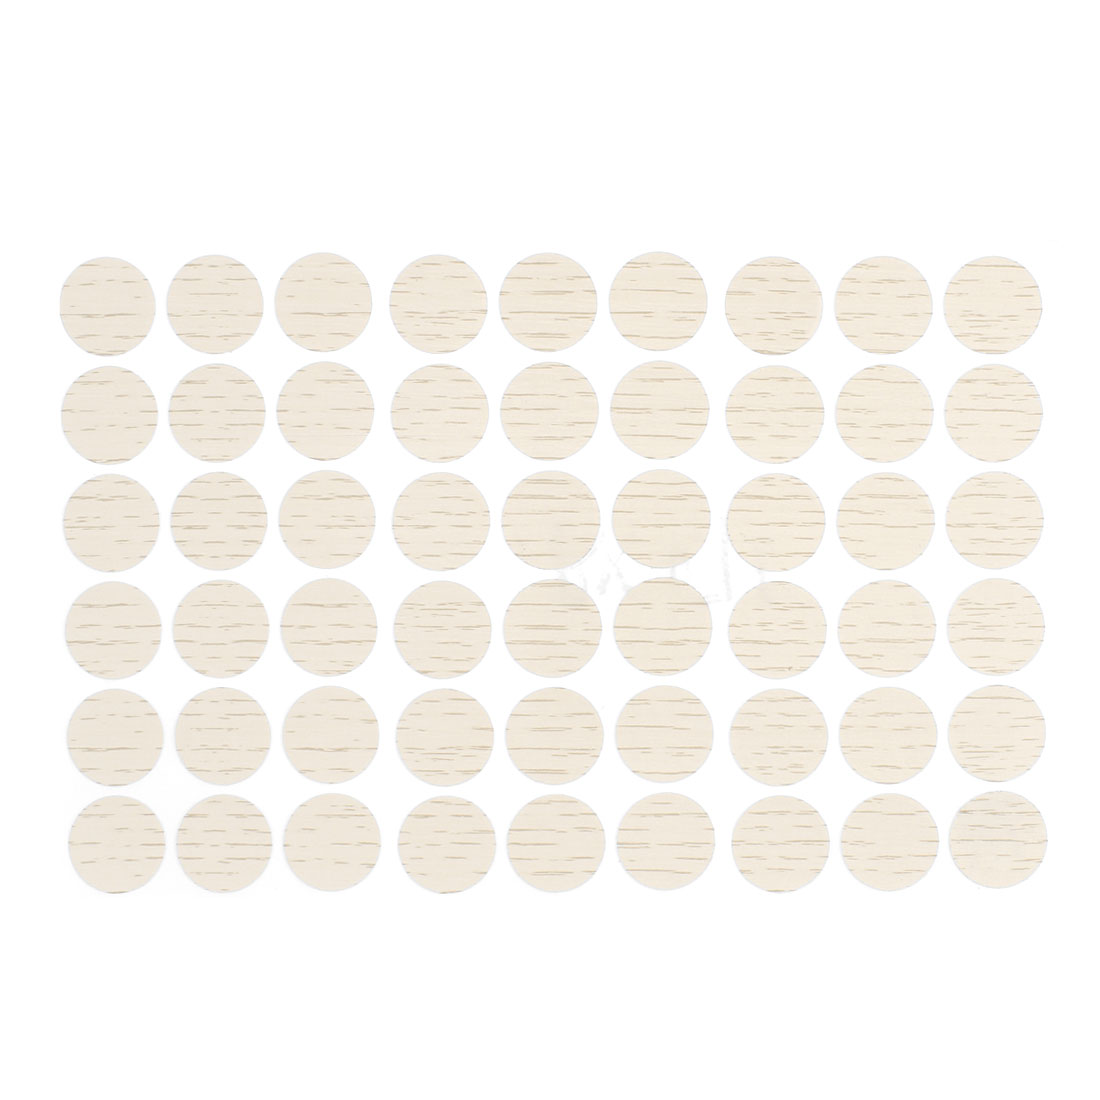 Self-adhesive Screw Covers Caps Stickers Decor Light Beige 54 in 1 for 21mm Hole